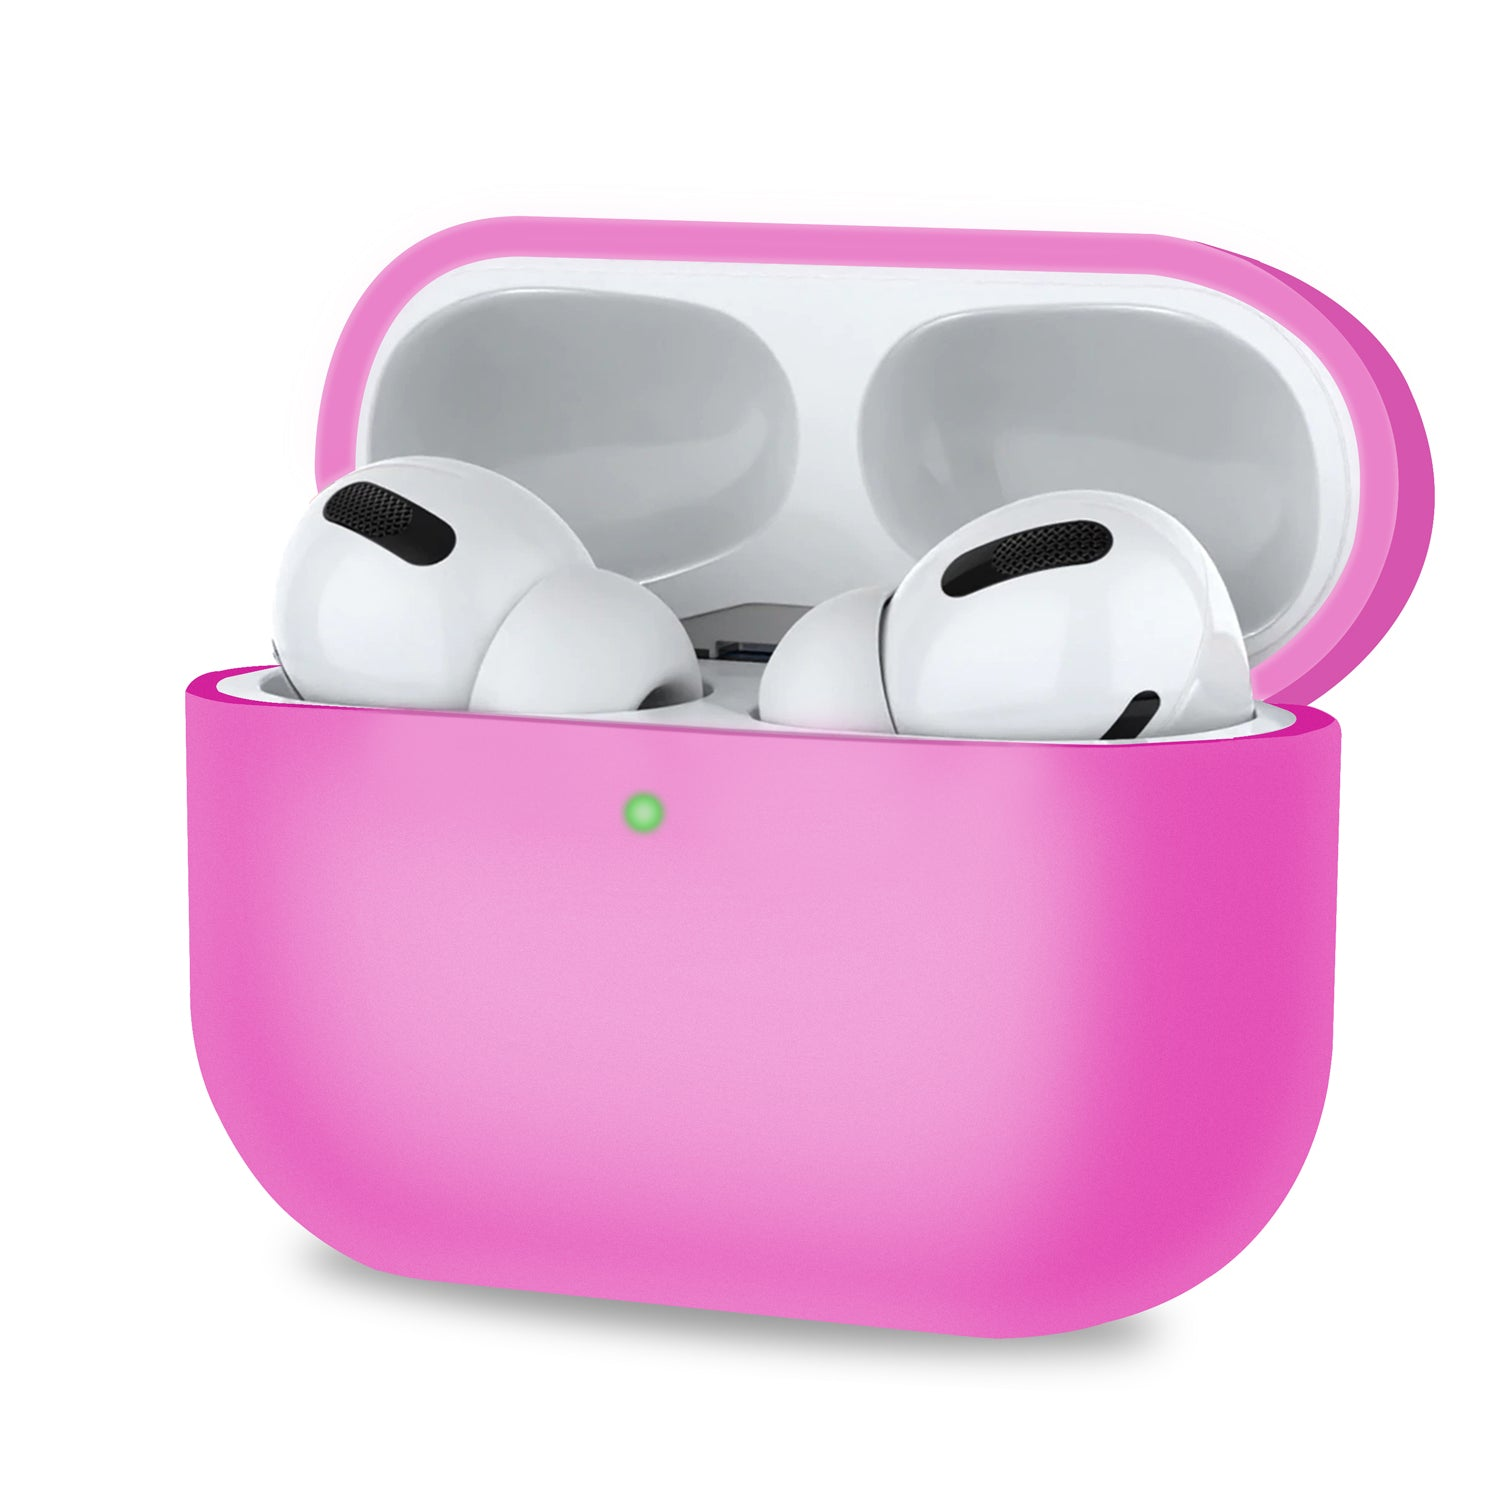 Pink Protective Case Compatible with LED Airpods Pro/Airpods 3 Case, Audio Accessories by TradeNRG